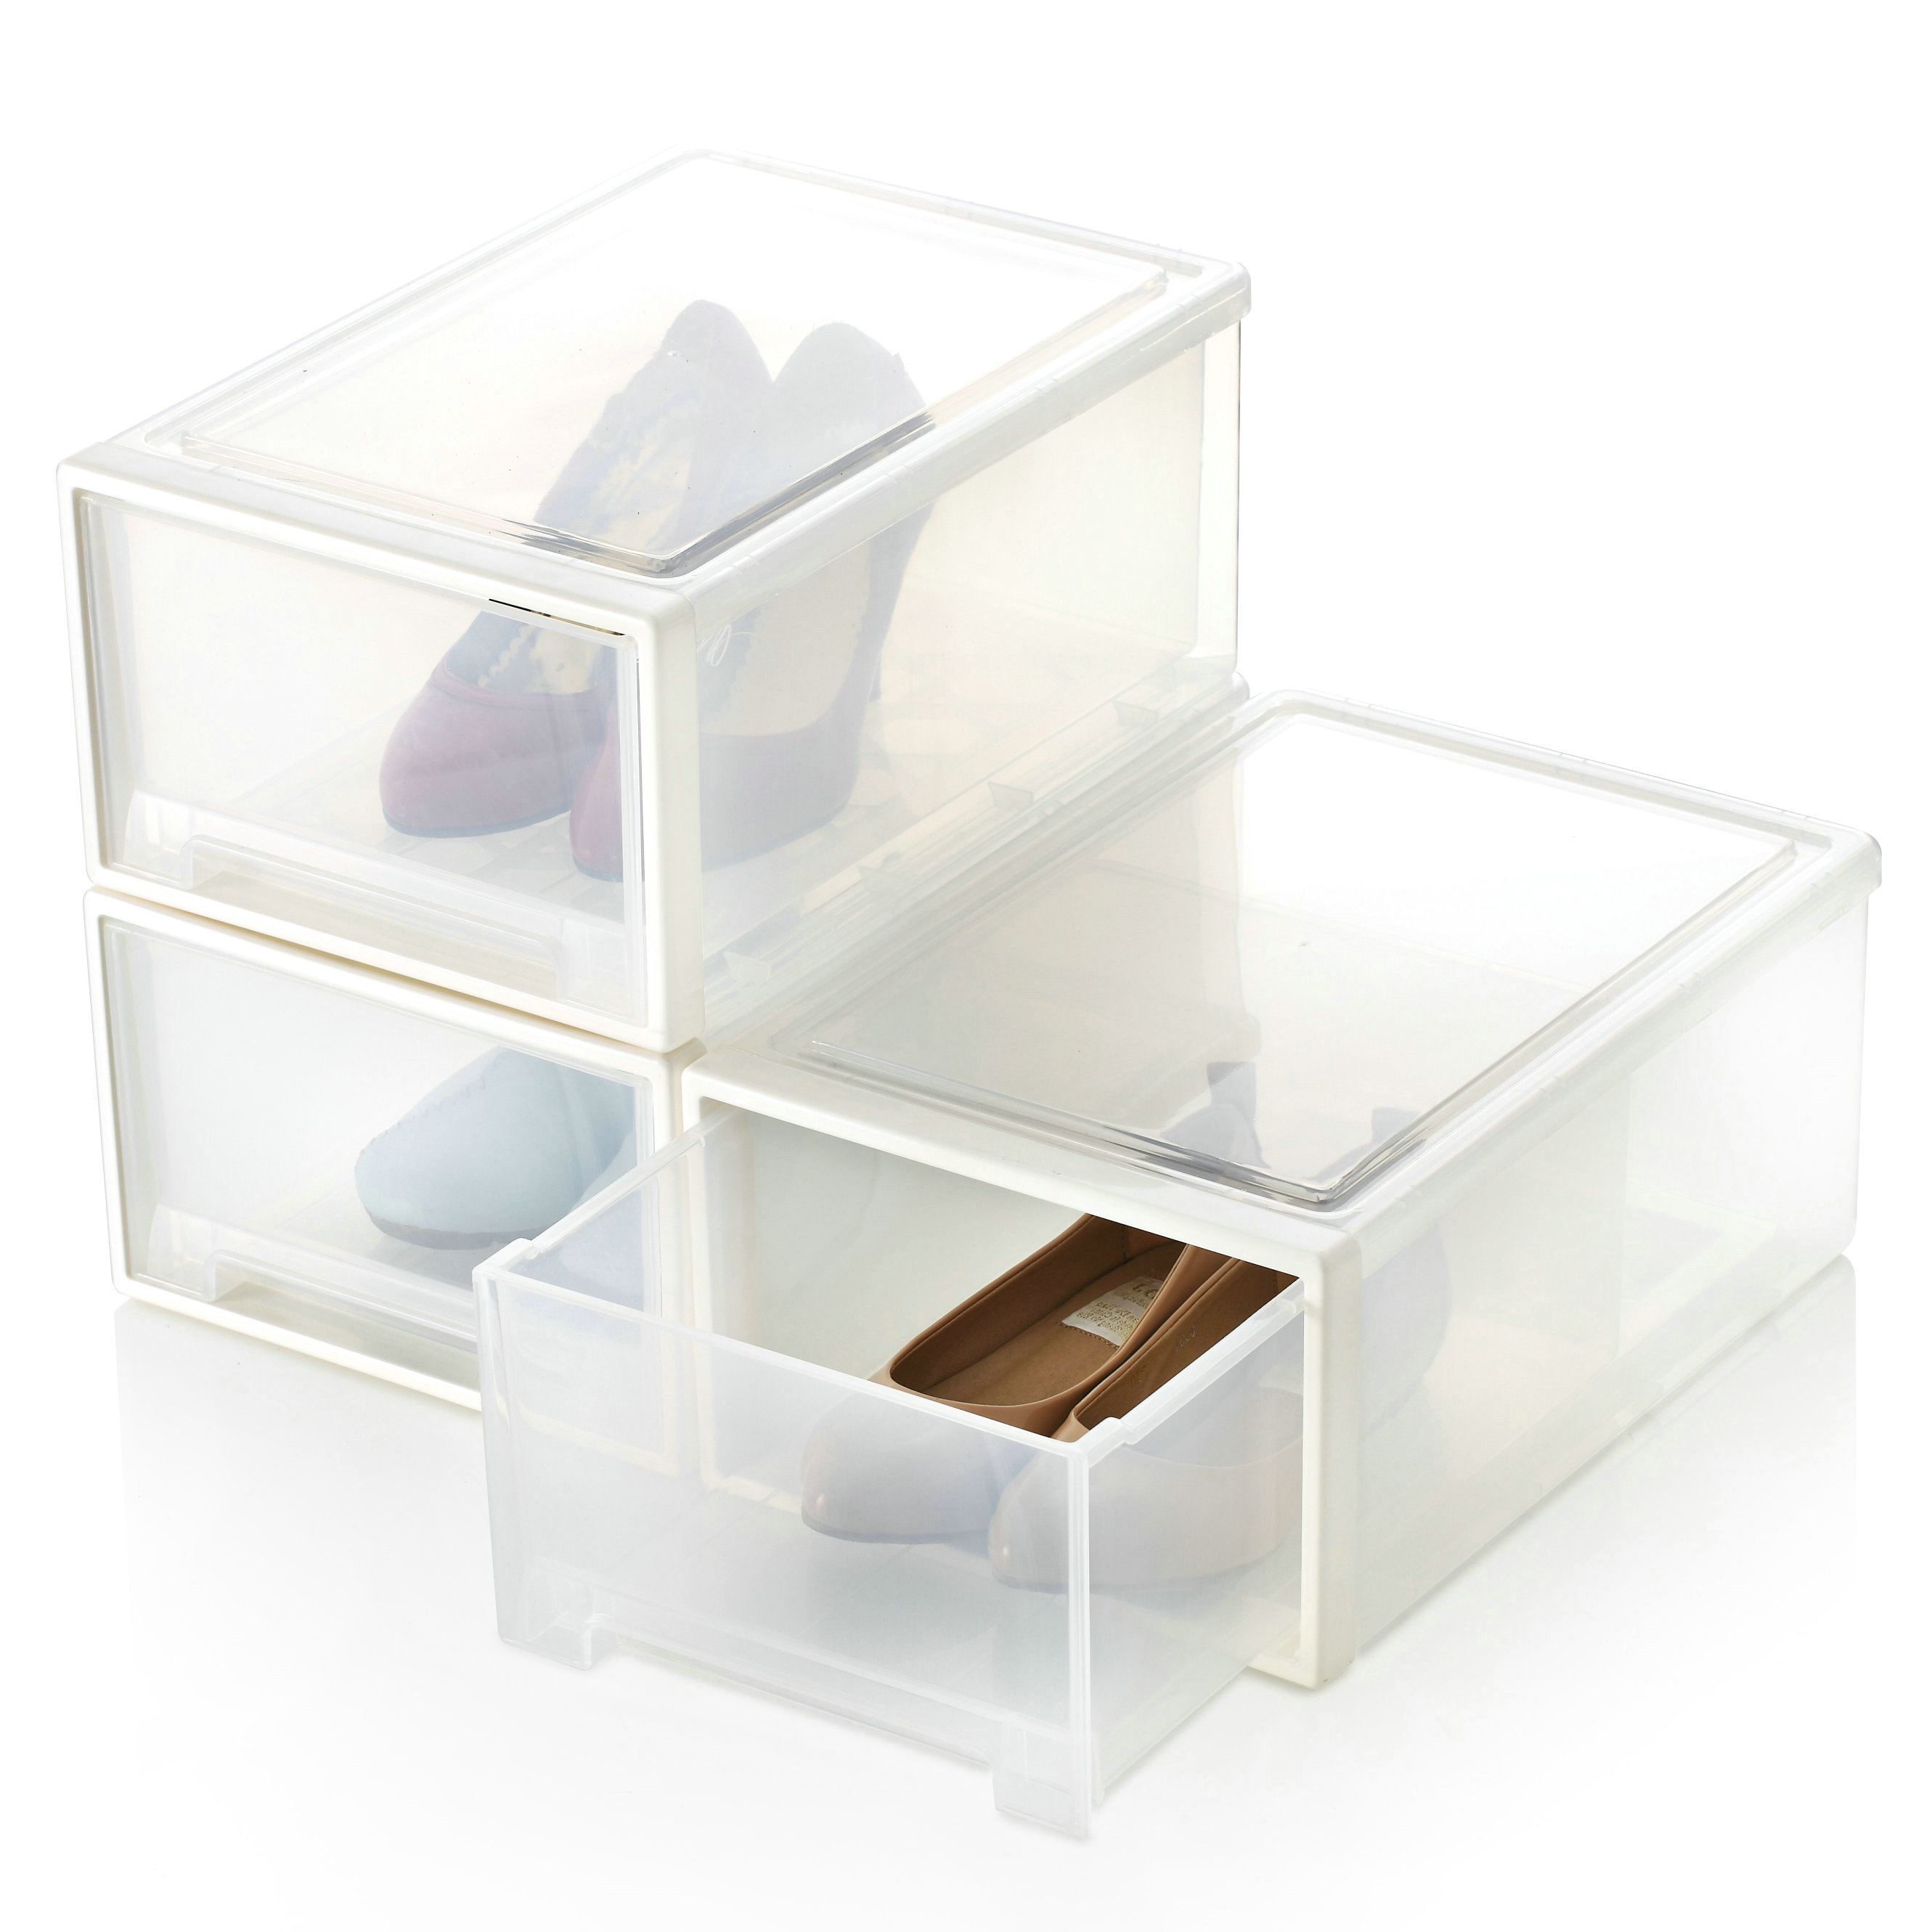 The hsbd household thickening drawer transparent plastic shoe box storage shoe box jewelry box-in Storage Boxes u0026 Bins from Home u0026 Garden on Aliexpress.com ...  sc 1 st  AliExpress.com & The hsbd household thickening drawer transparent plastic shoe box ...